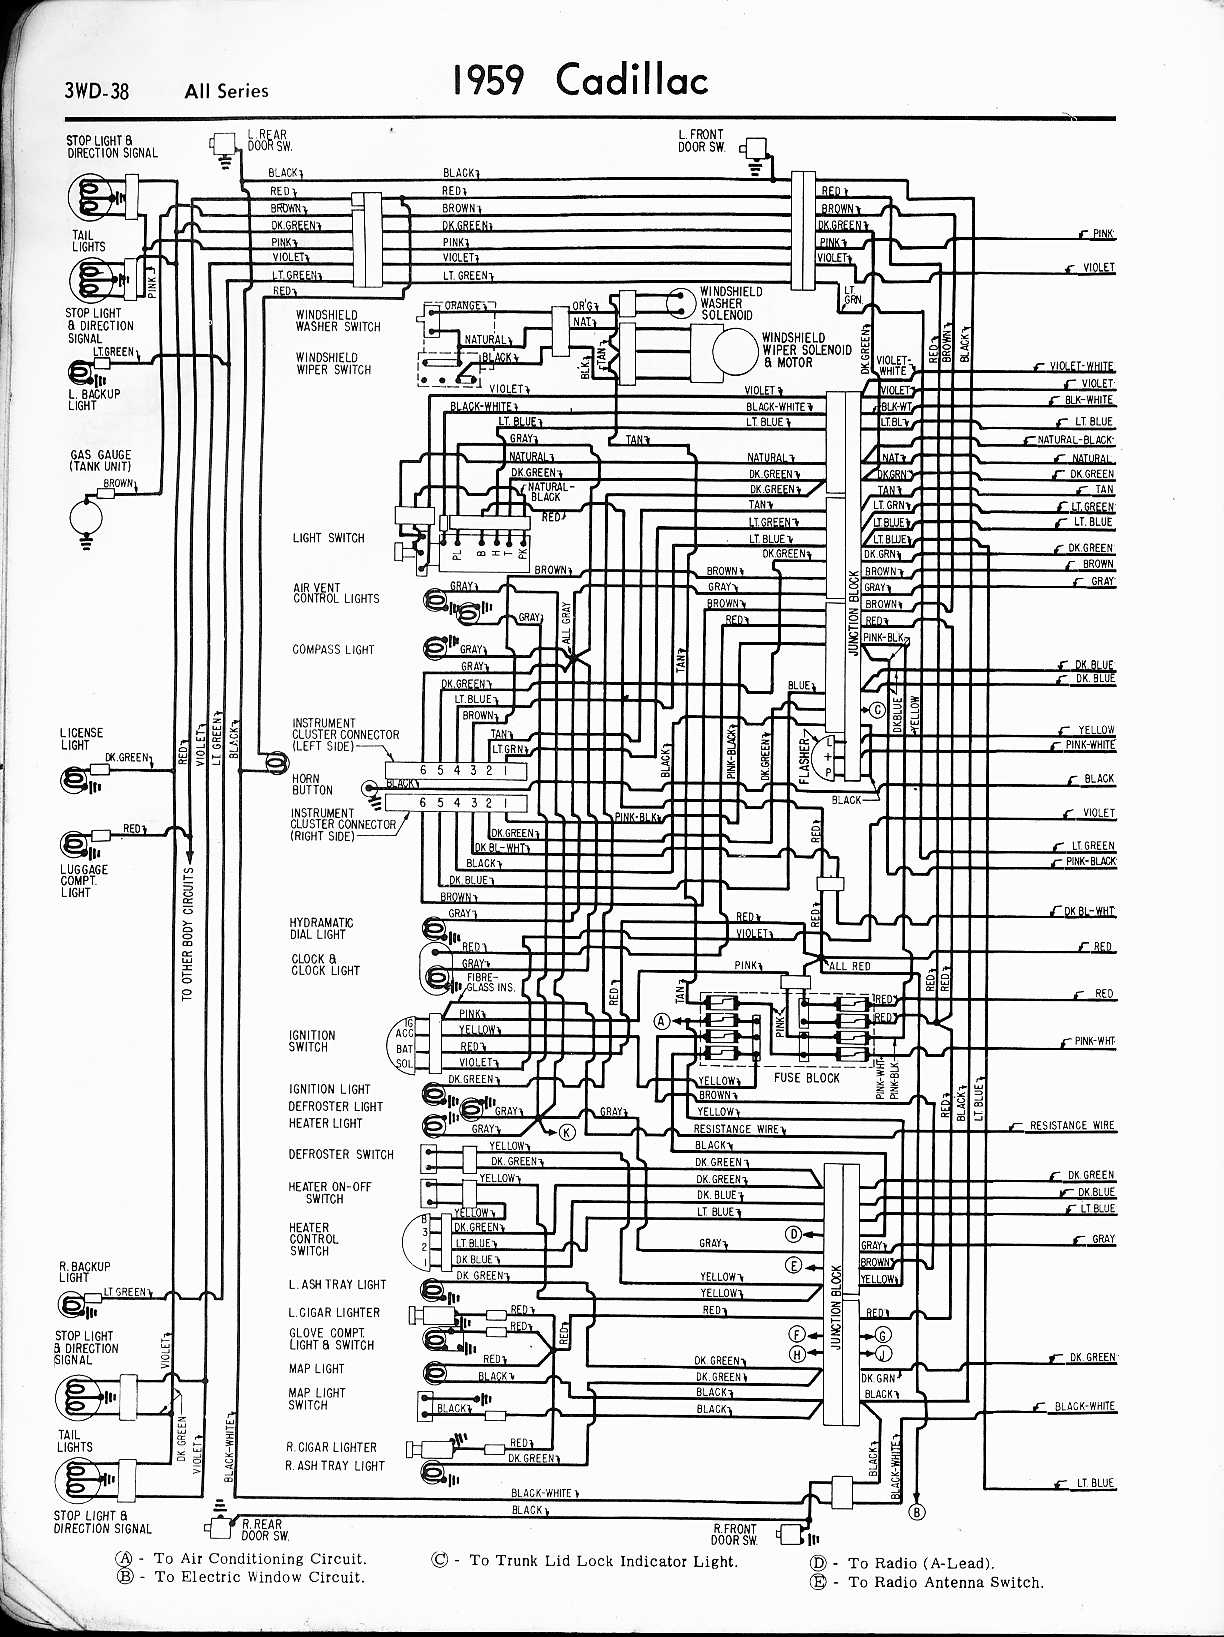 Cadillac Speakers Wiring Diagram : Cadillac heater not working